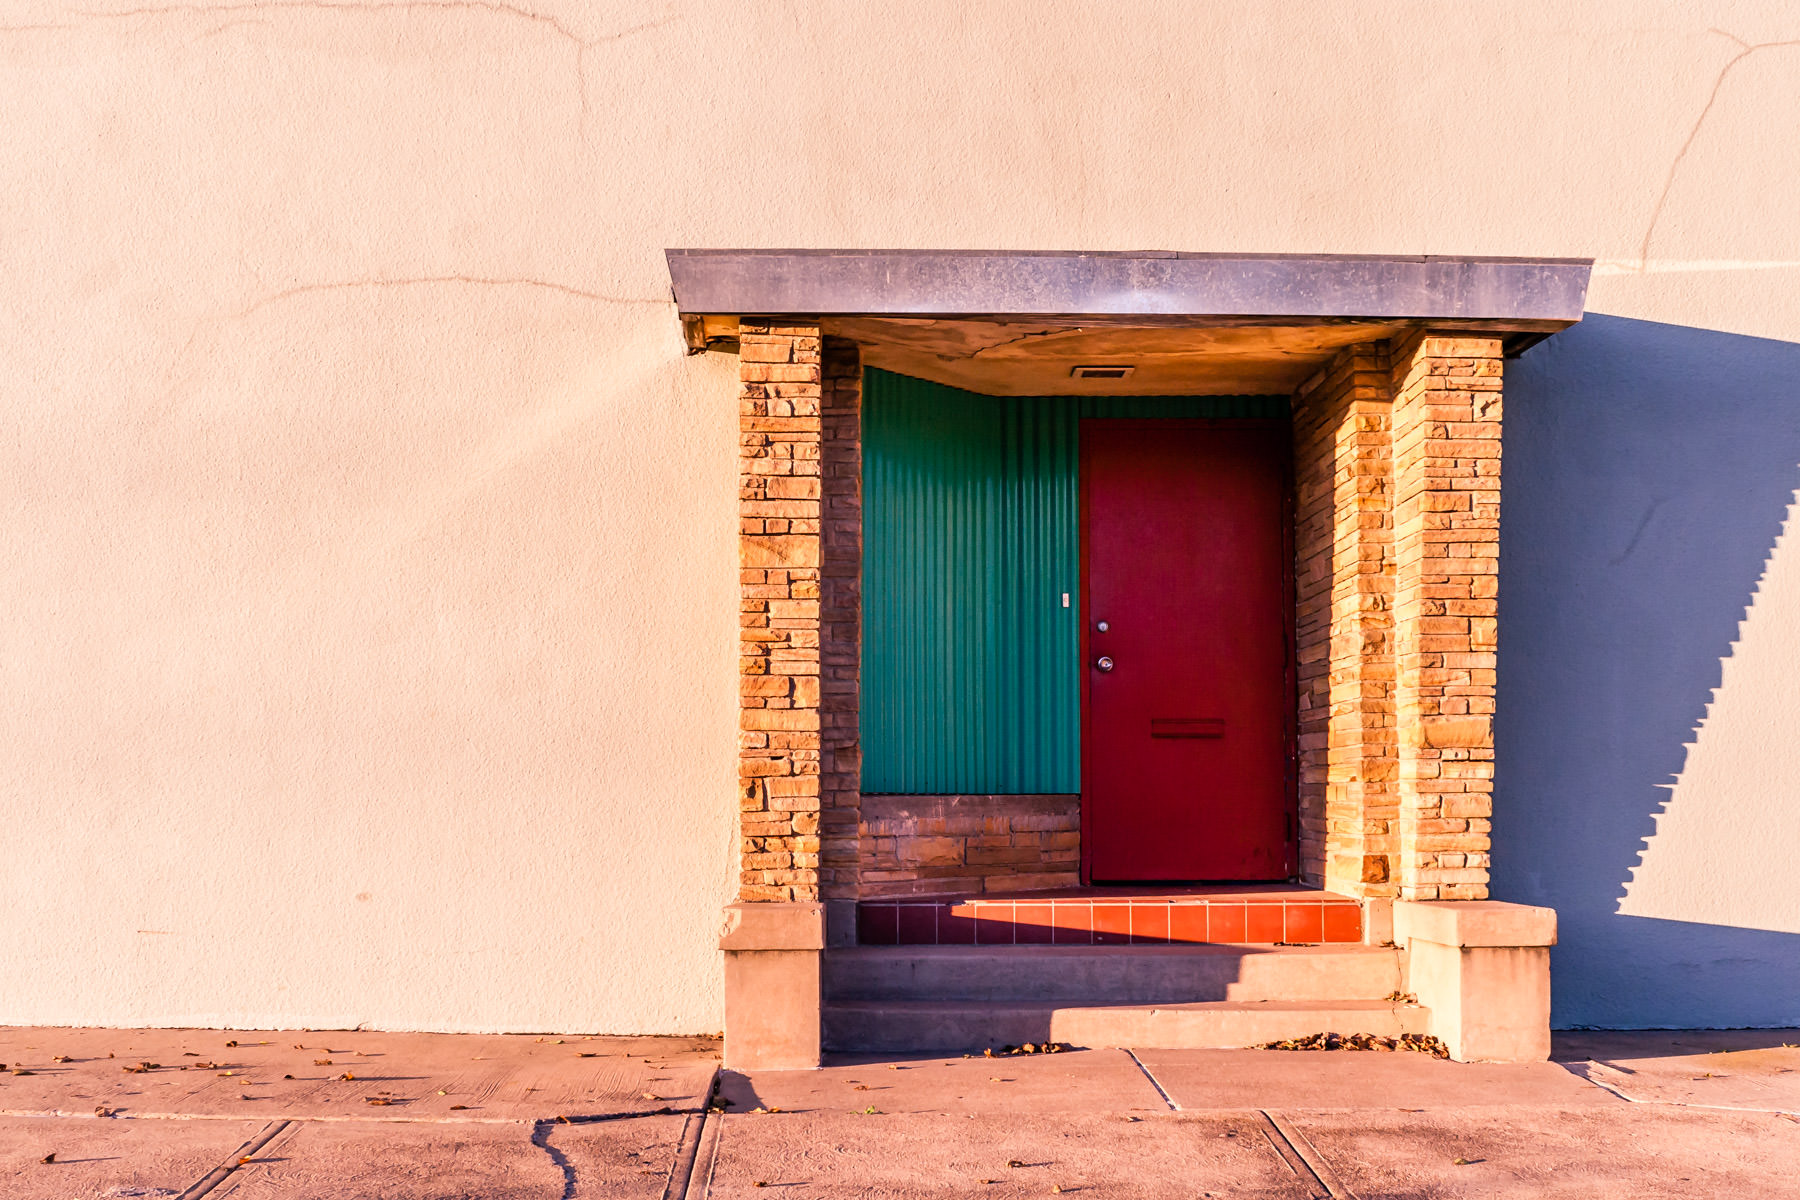 A door on the outside of a nondescript building in Dallas' Exposition Park/Fair Park neighborhood.